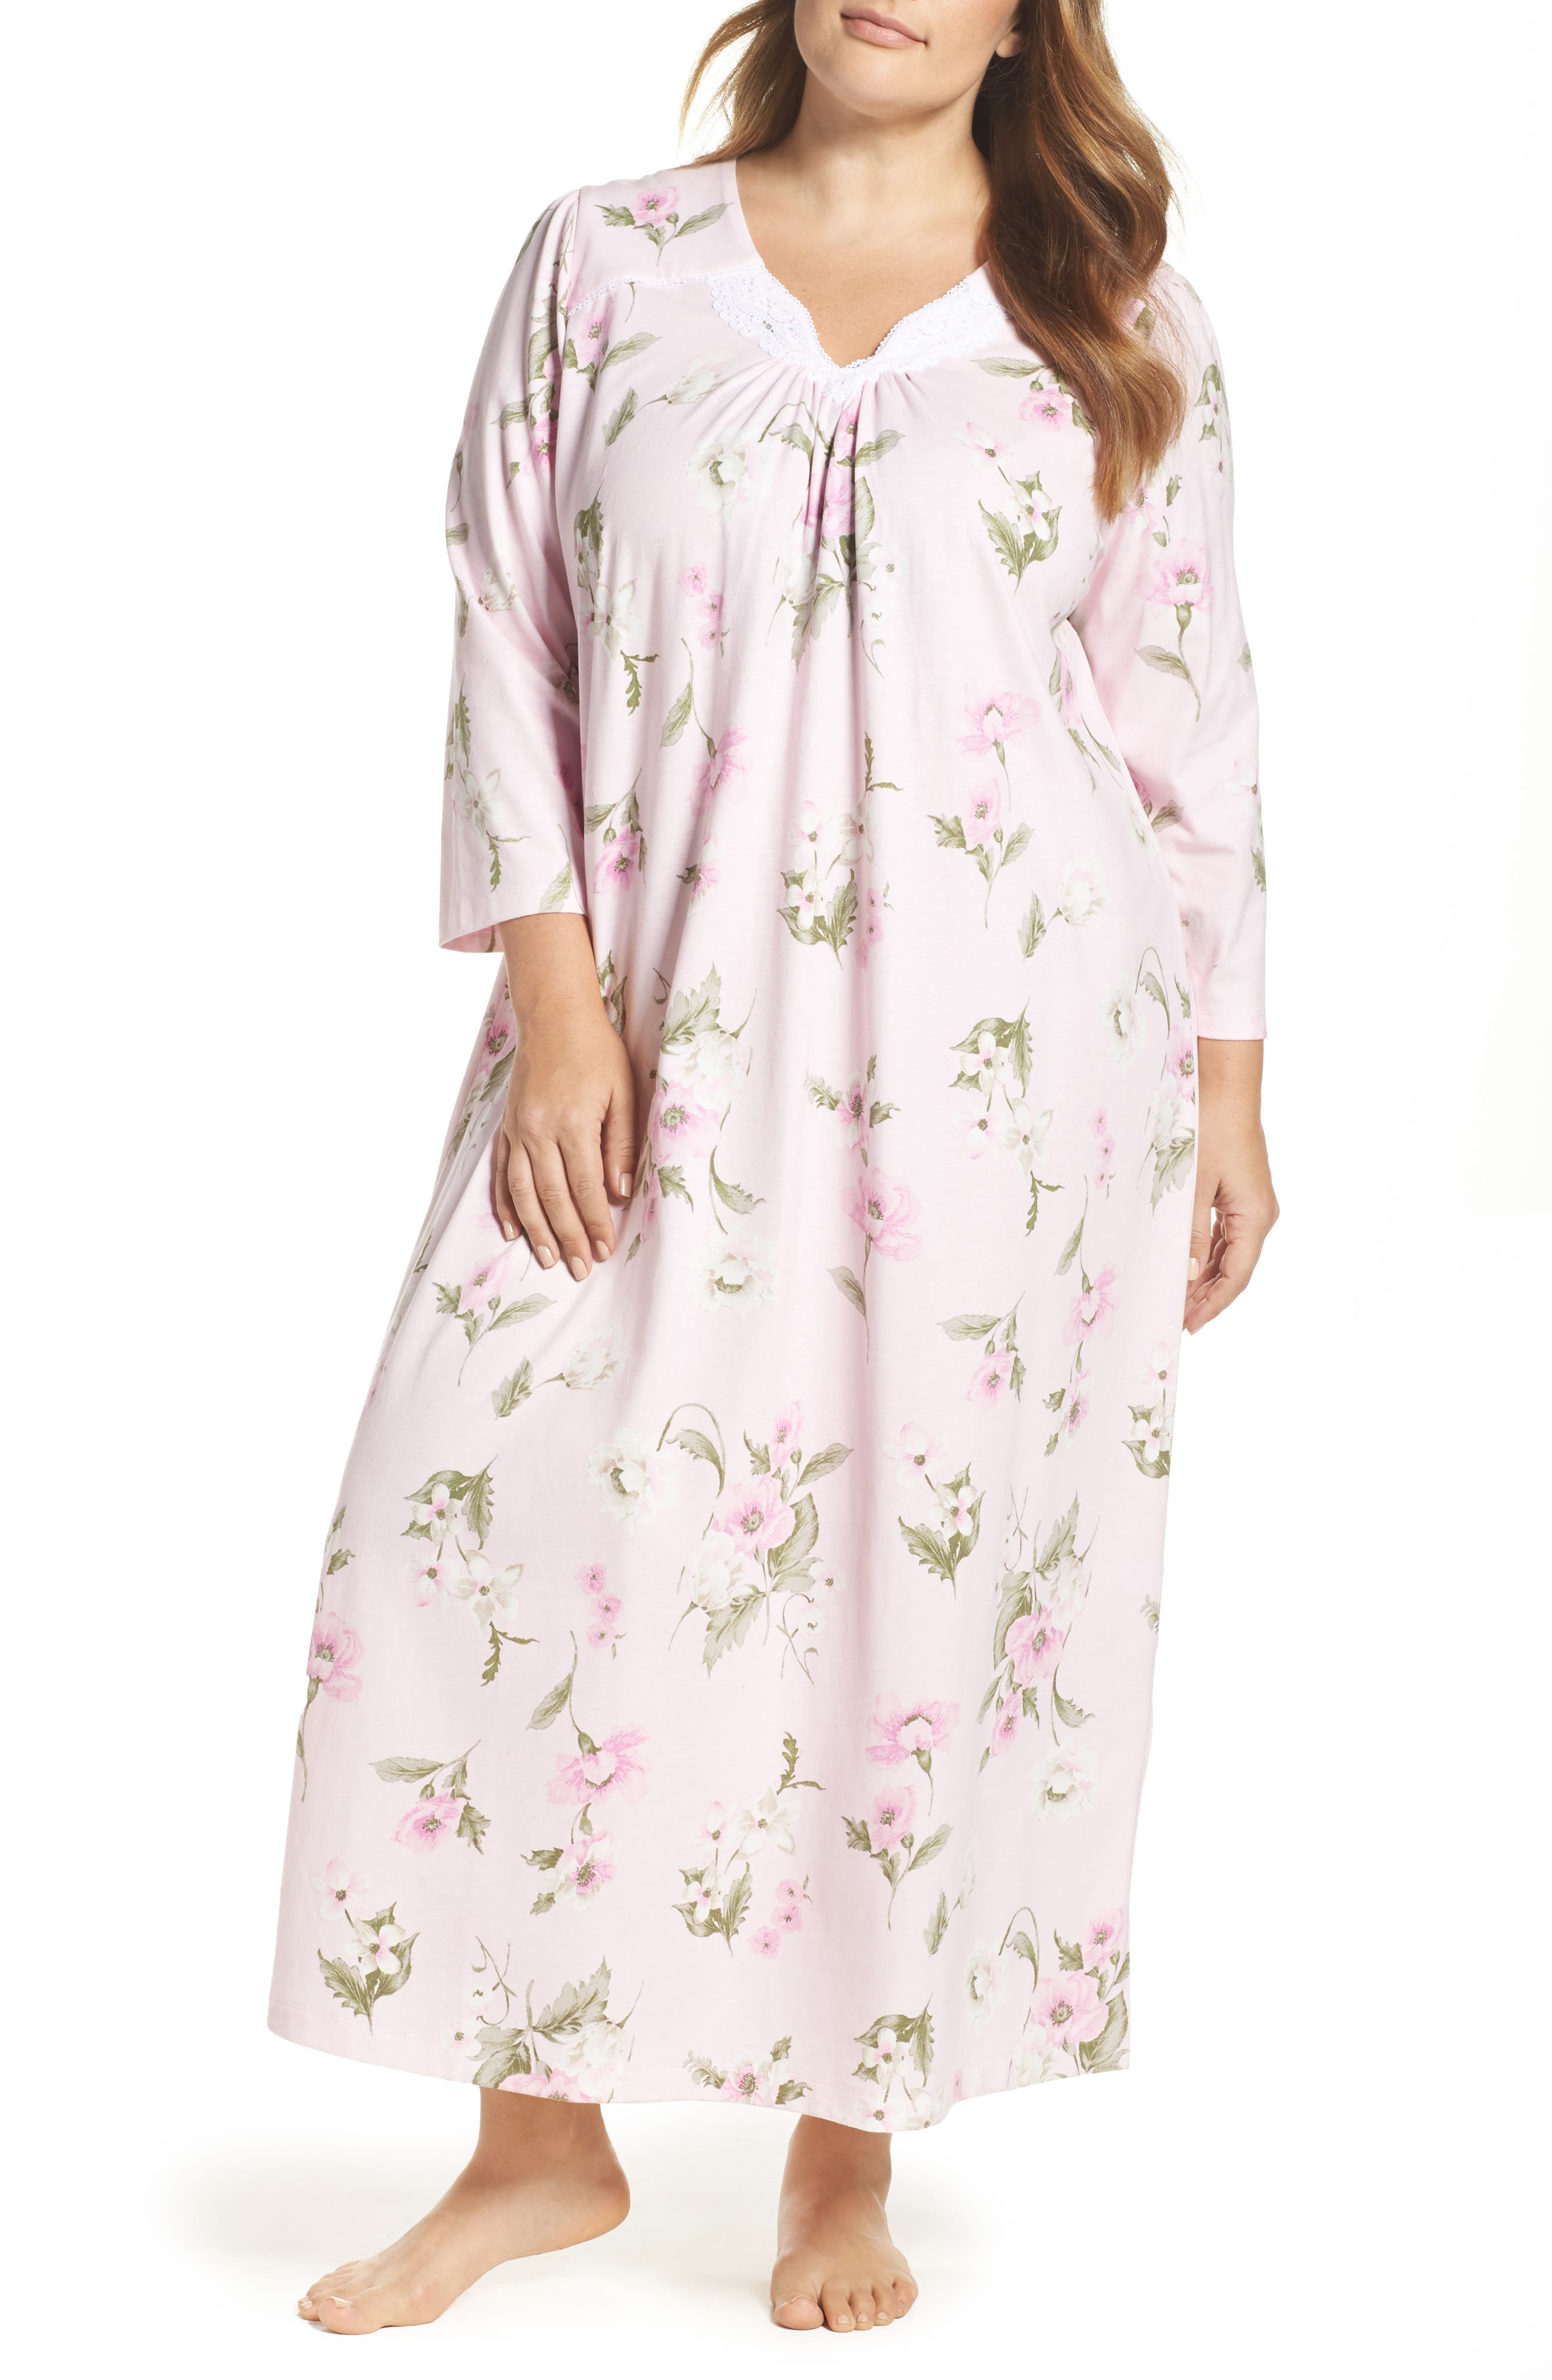 Alternate Image 1 Selected - Carole Hochman Knit Nightgown (Plus Size)